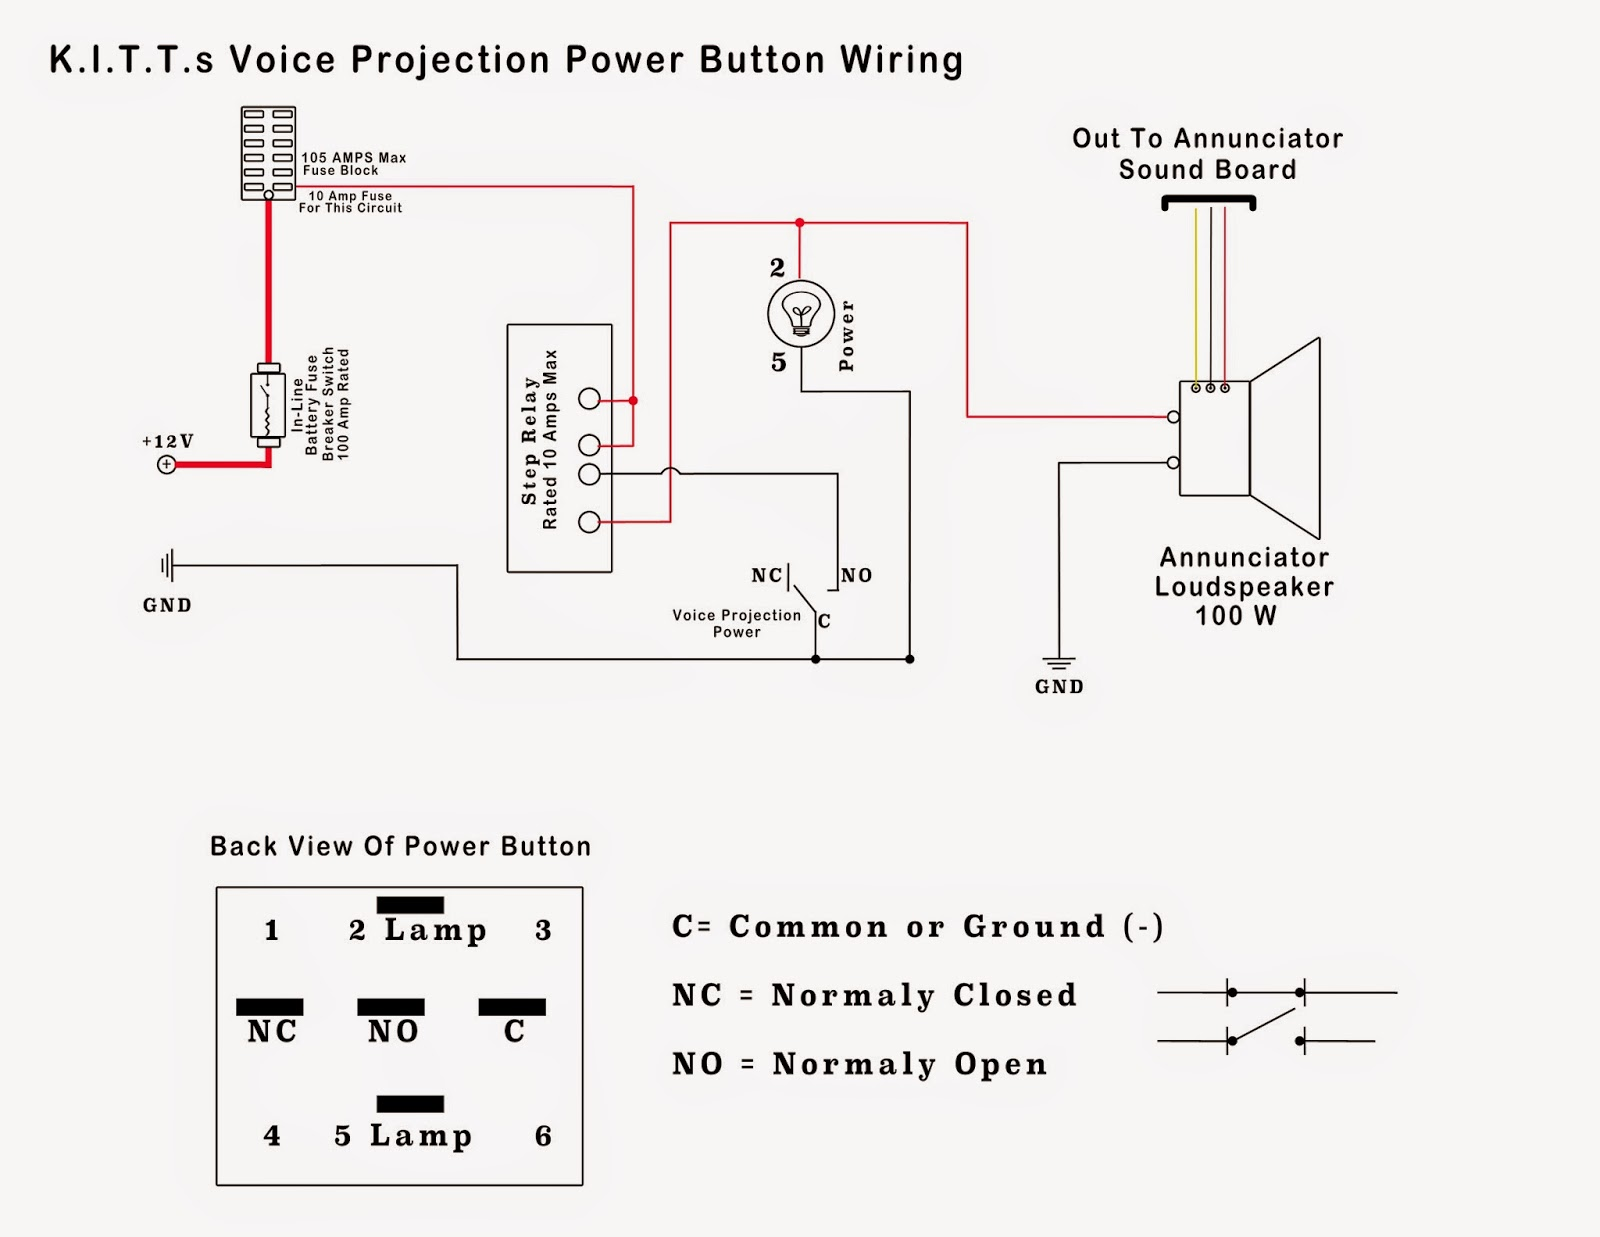 my knight rider 2000 project voice projection unit diagram modified rh myknightrider2000 blogspot com